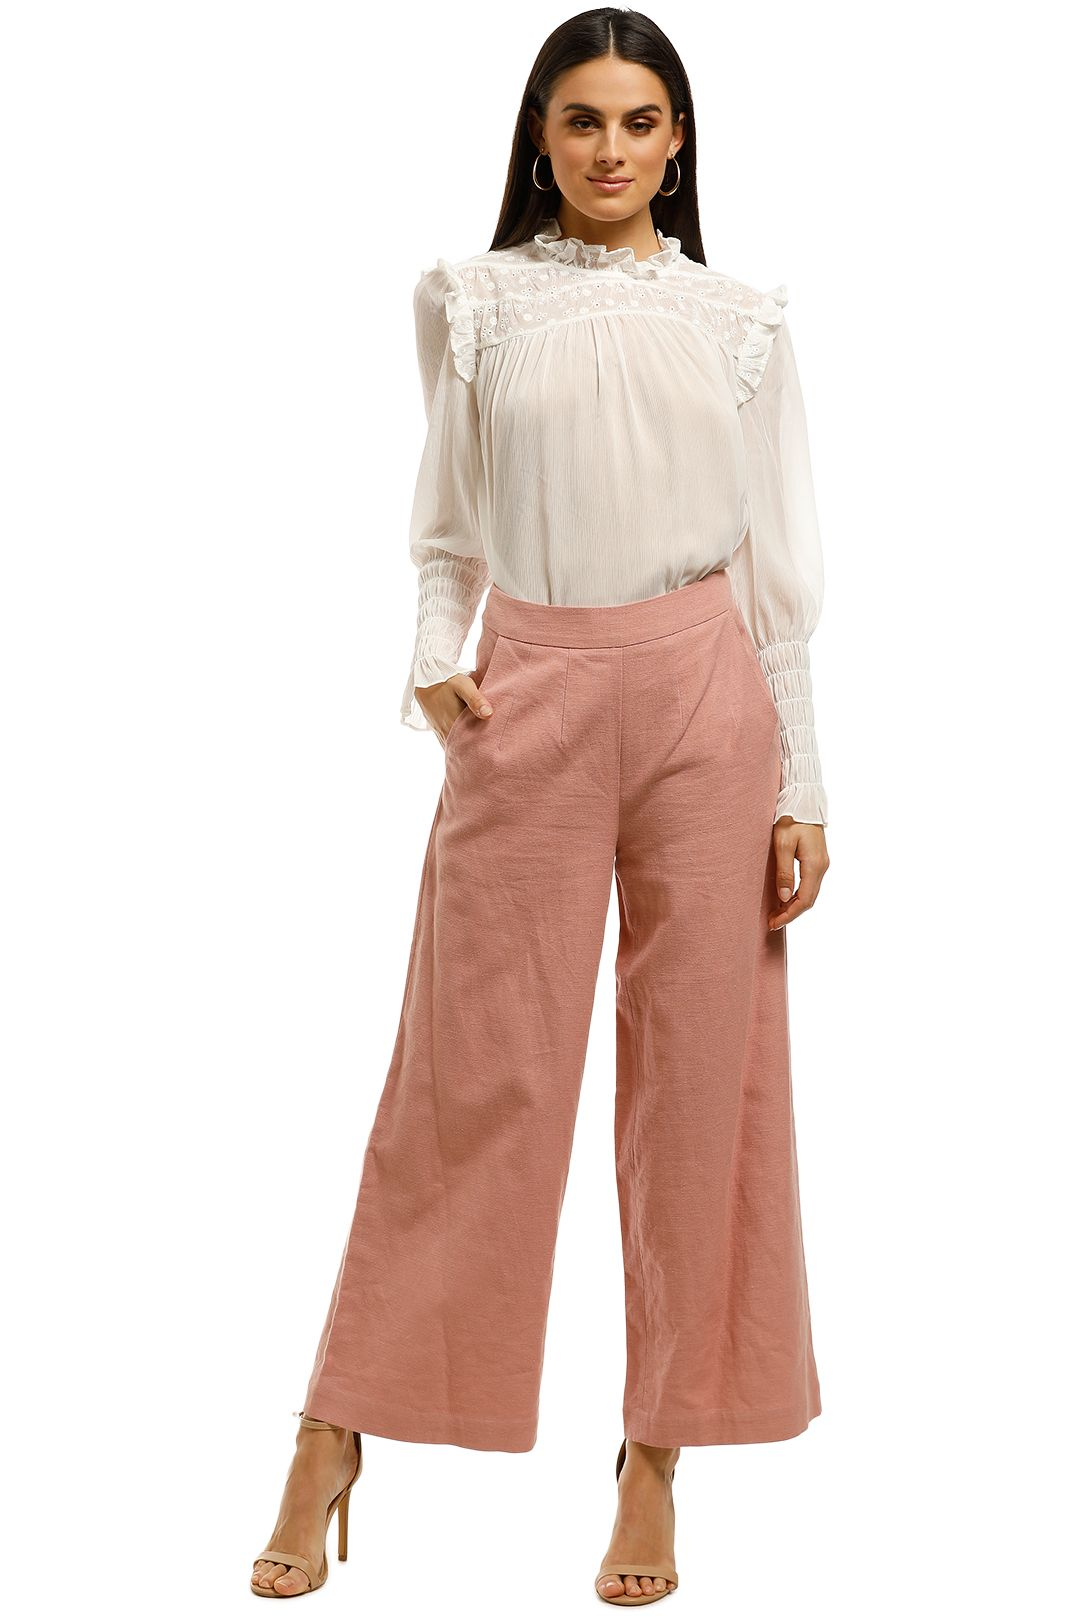 Ministry-Of-Style-Daybreak-Pants-Pink-Front